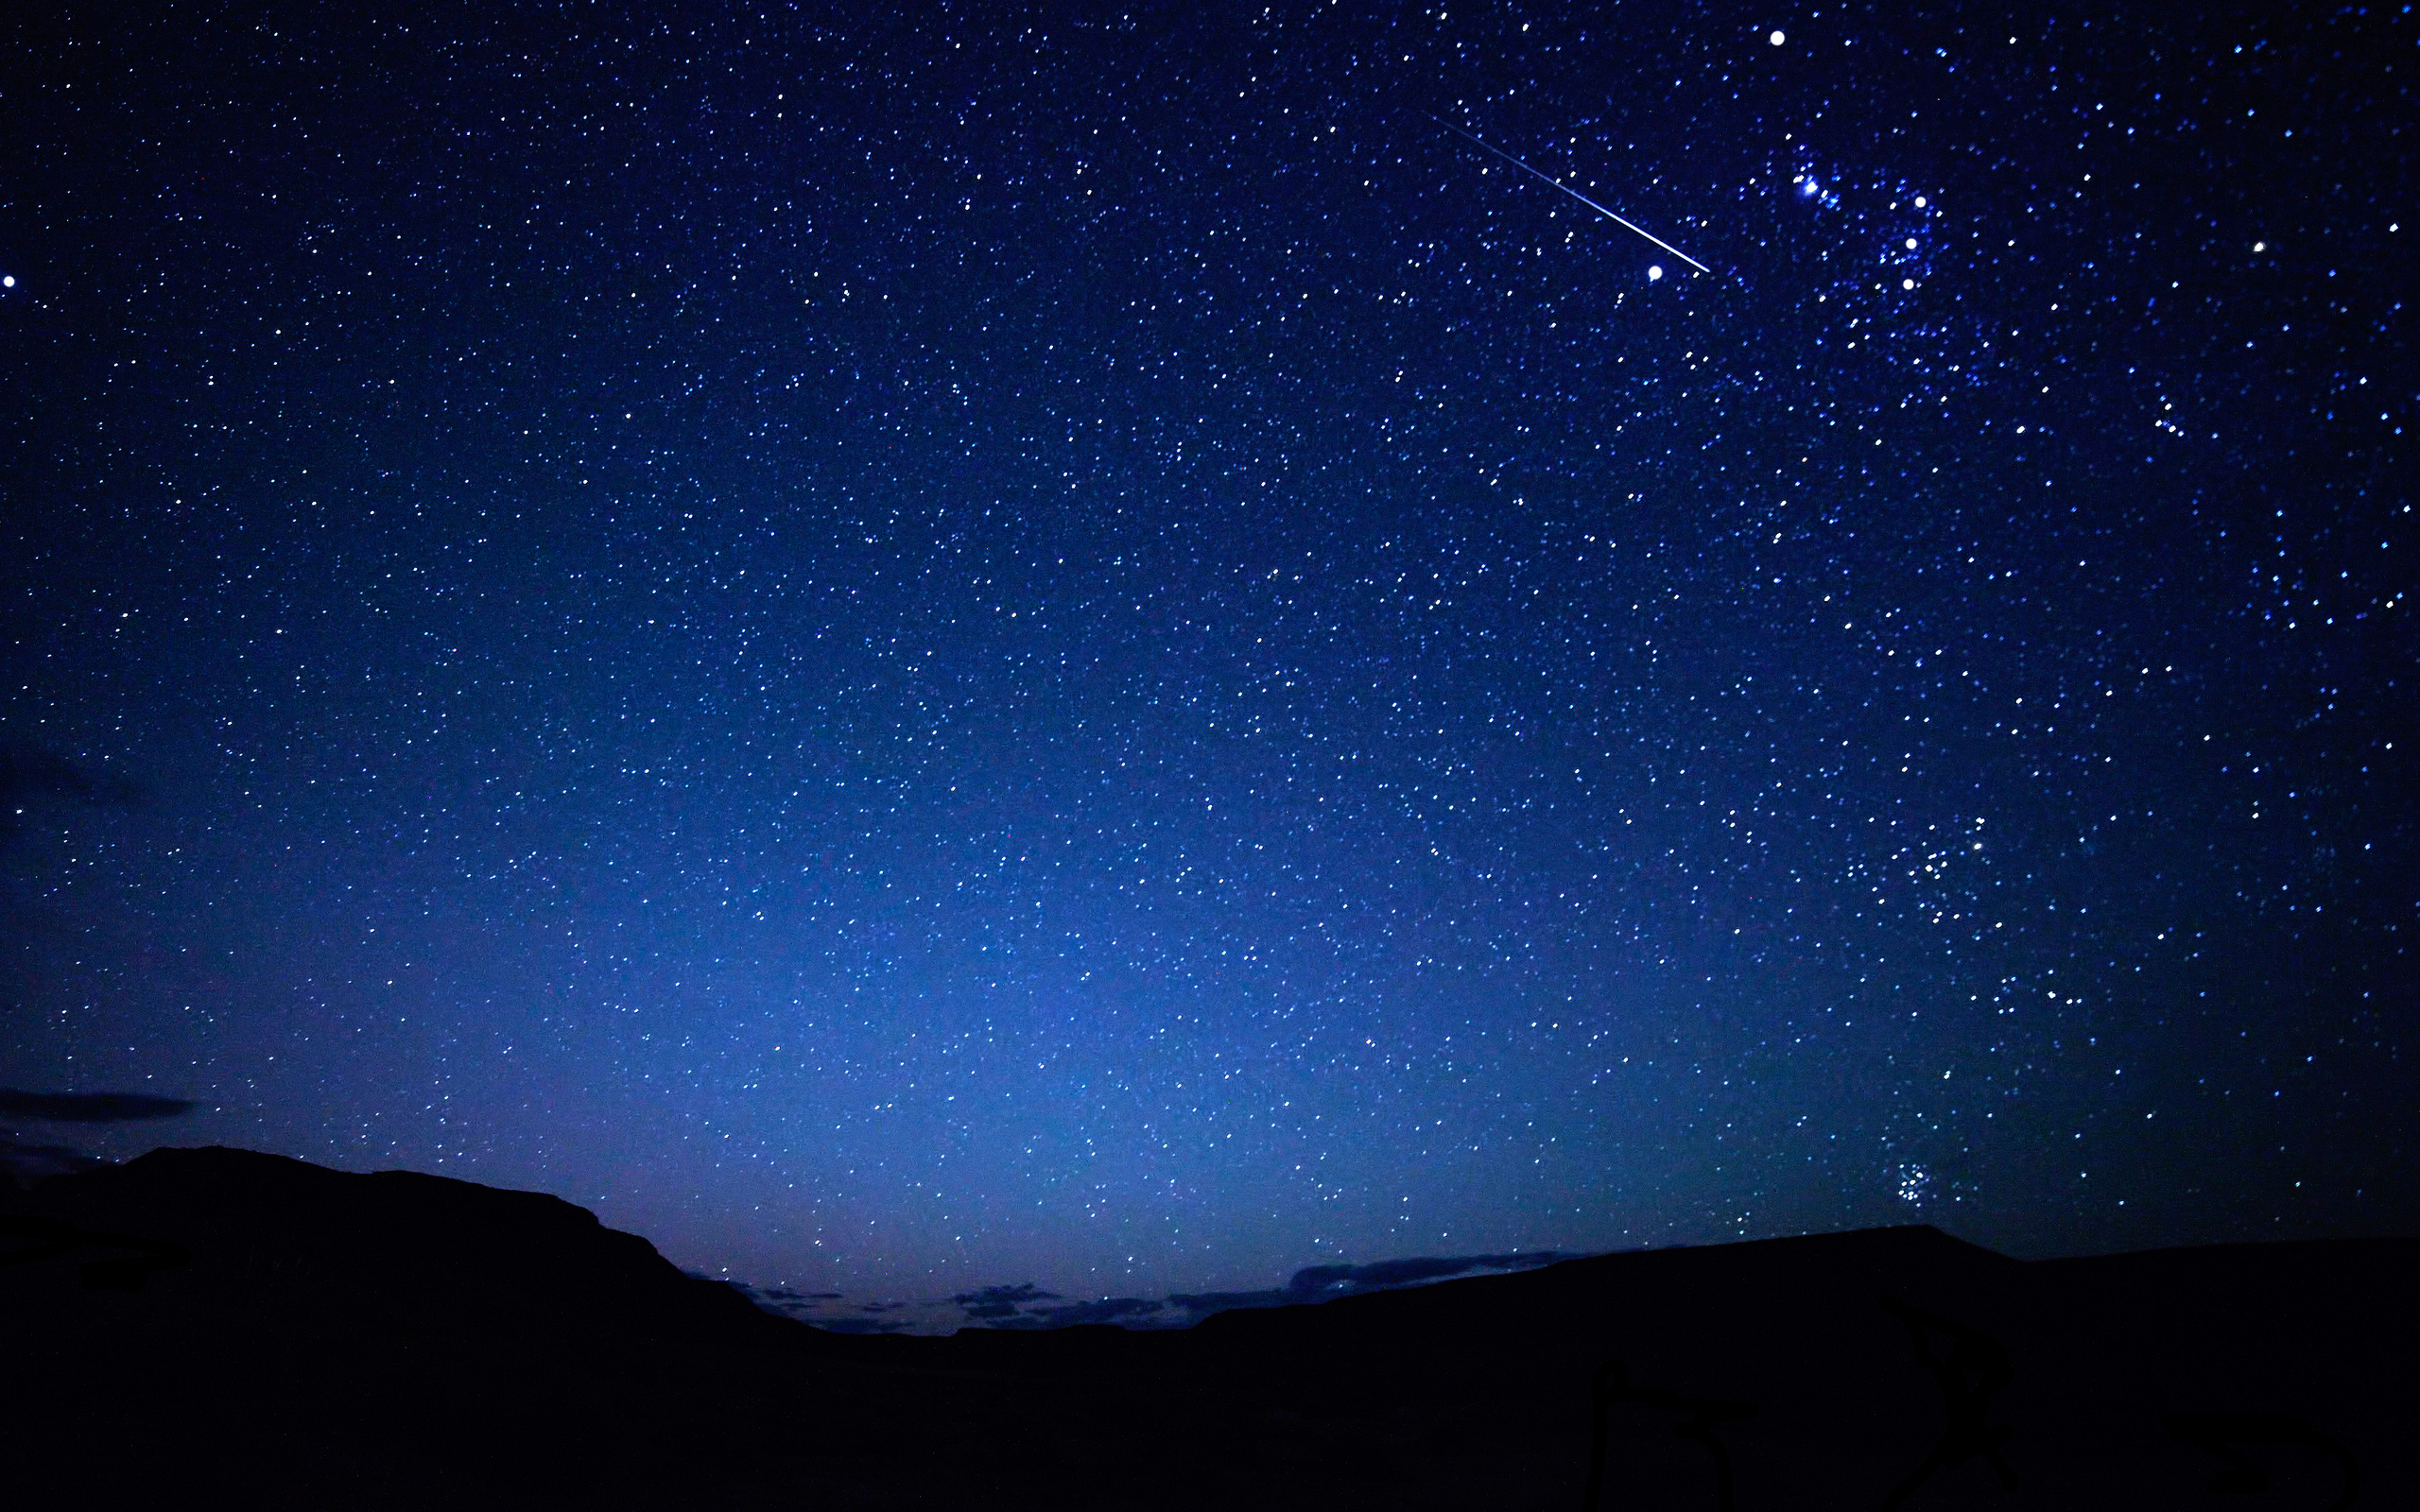 Night Sky Wallpaper For Android Wallpaper 2560x1600